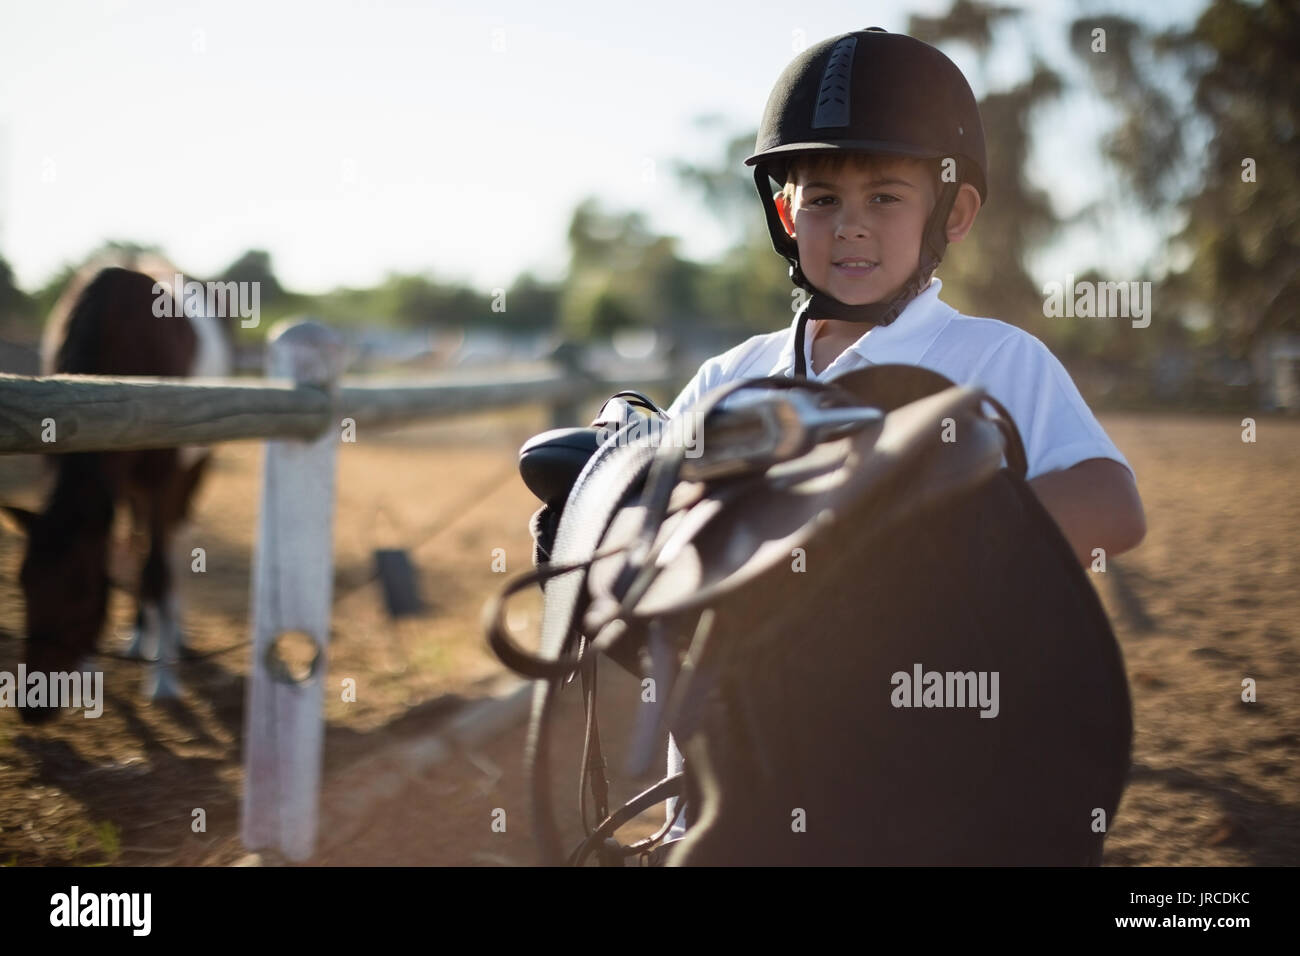 7836dc5264c0 Boy Holding Saddle Stock Photos   Boy Holding Saddle Stock Images ...